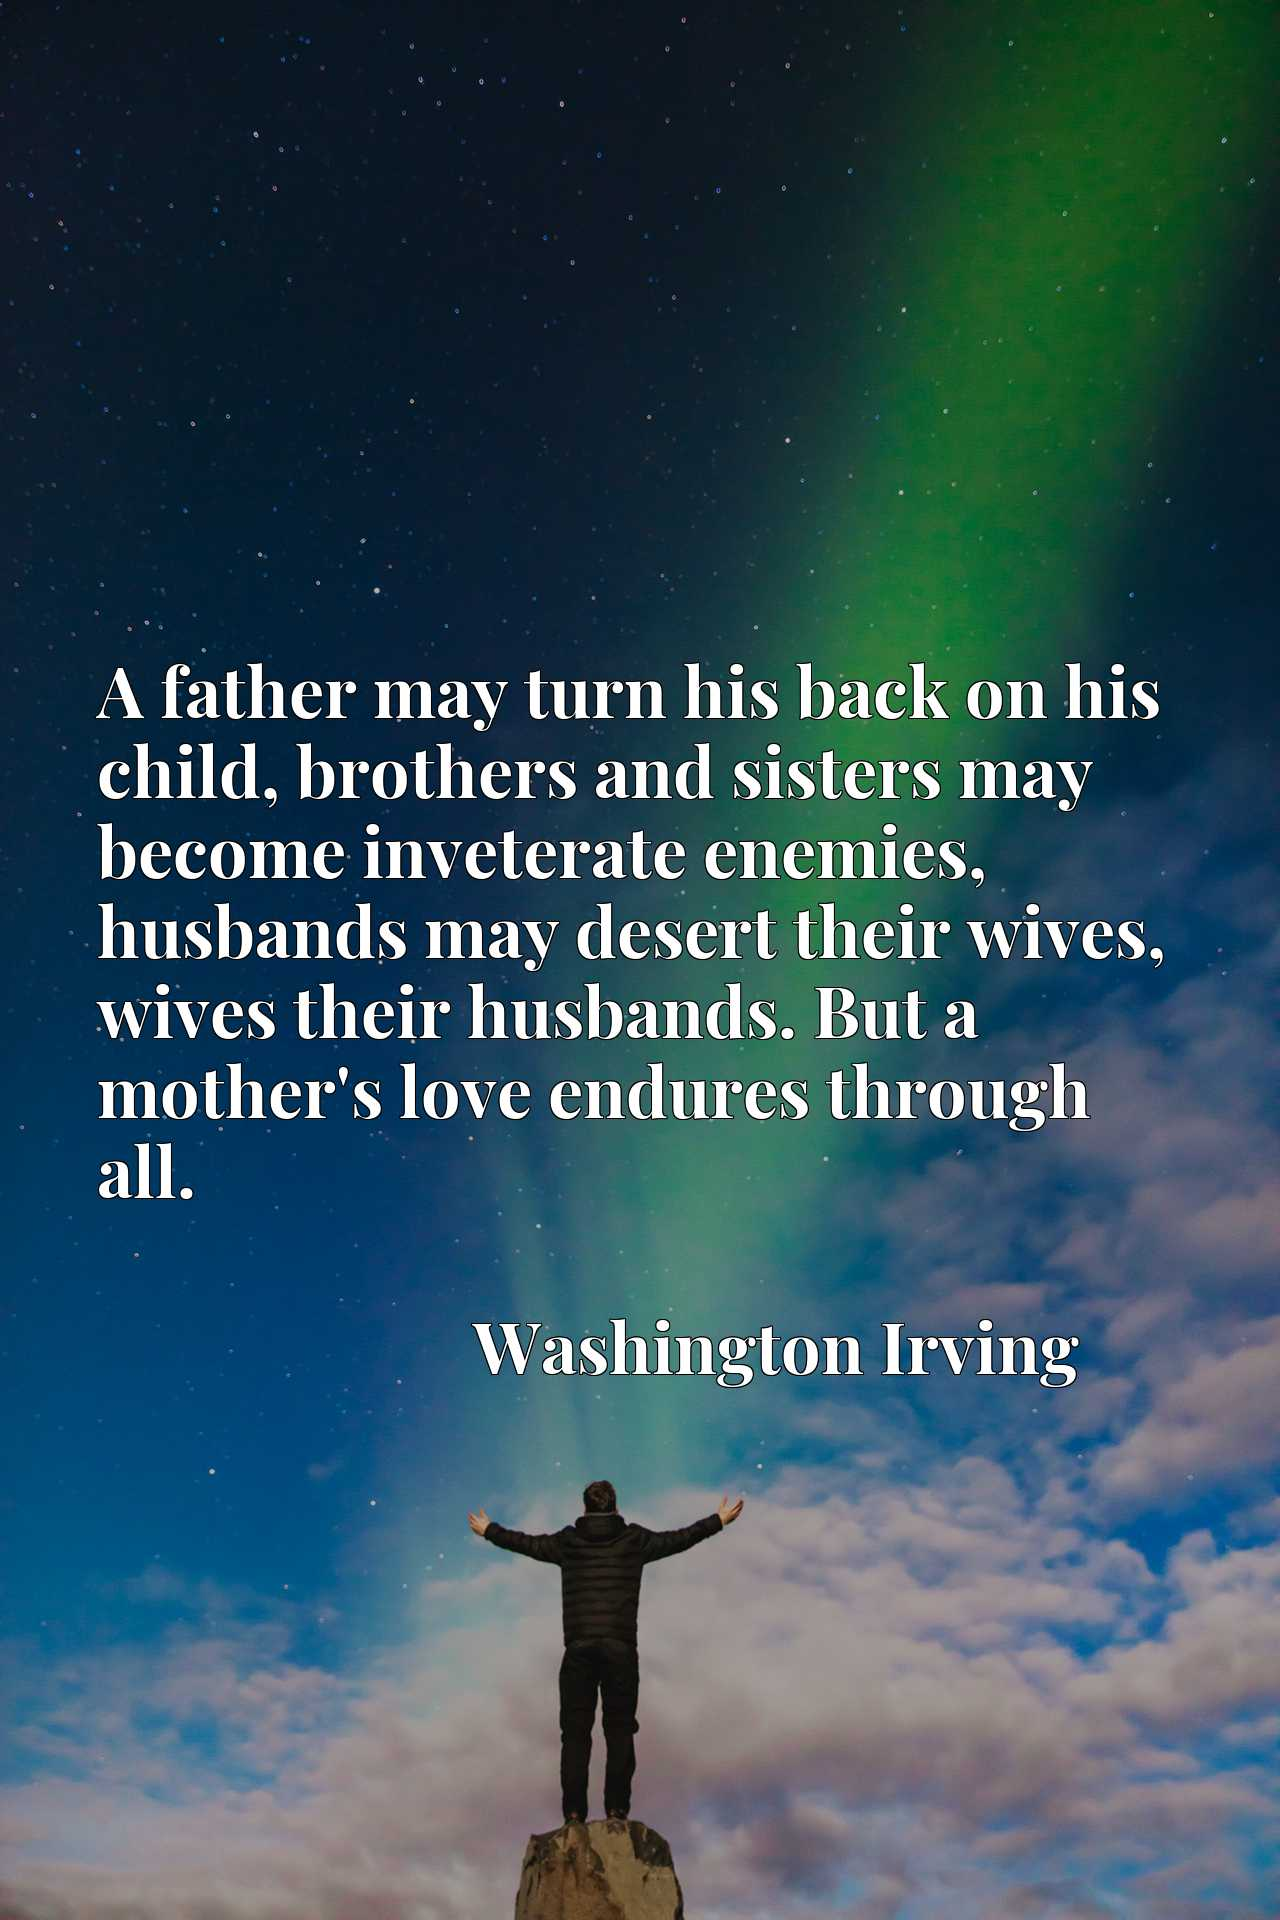 A father may turn his back on his child, brothers and sisters may become inveterate enemies, husbands may desert their wives, wives their husbands. But a mother's love endures through all.